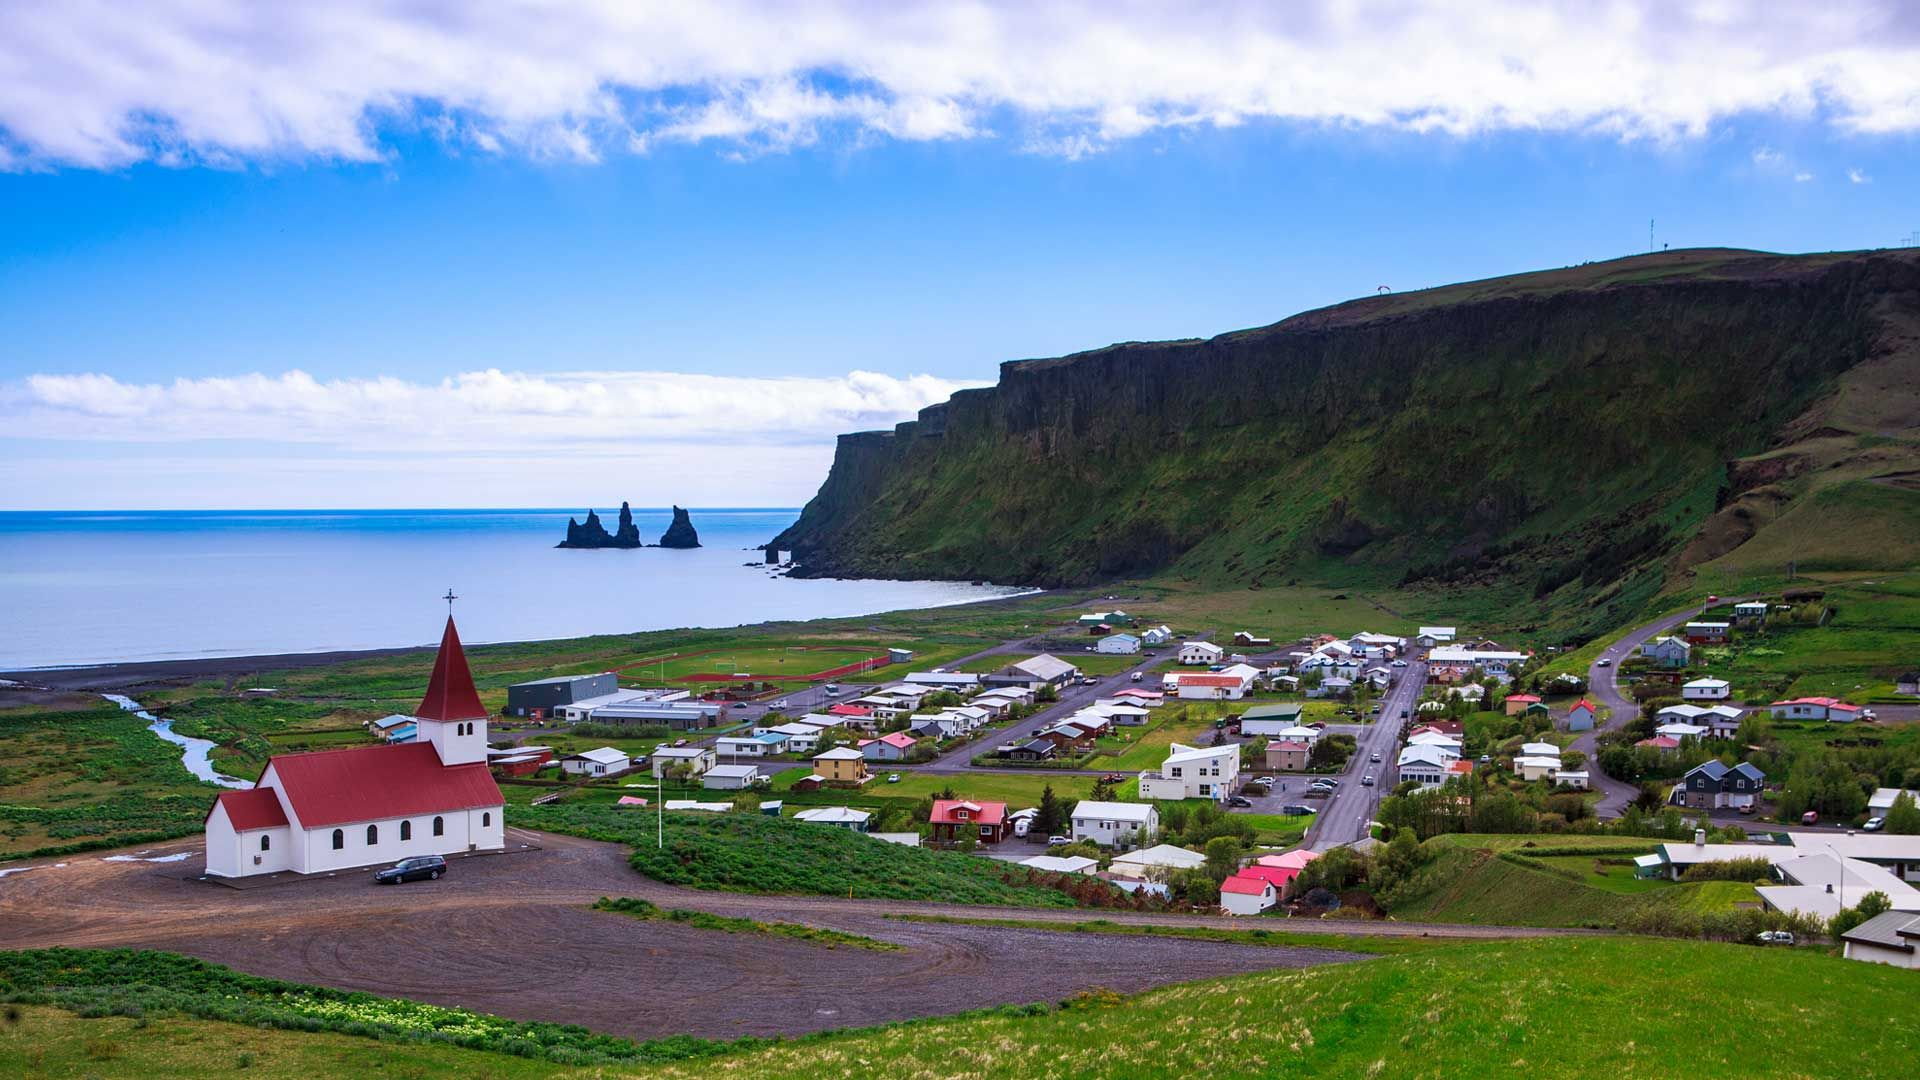 Vik #Iceland The village of Vik is the southernmost village in Iceland, located on the main ring road around the island, around 180 km (110 mi) by road southeast of Reykjavík. Despite its small size (291 inhabitants as of January 2011) it is the largest settlement for some 70 km (43 mi) around and is an important staging post, thus it is indicated on road signs from a long distance away.